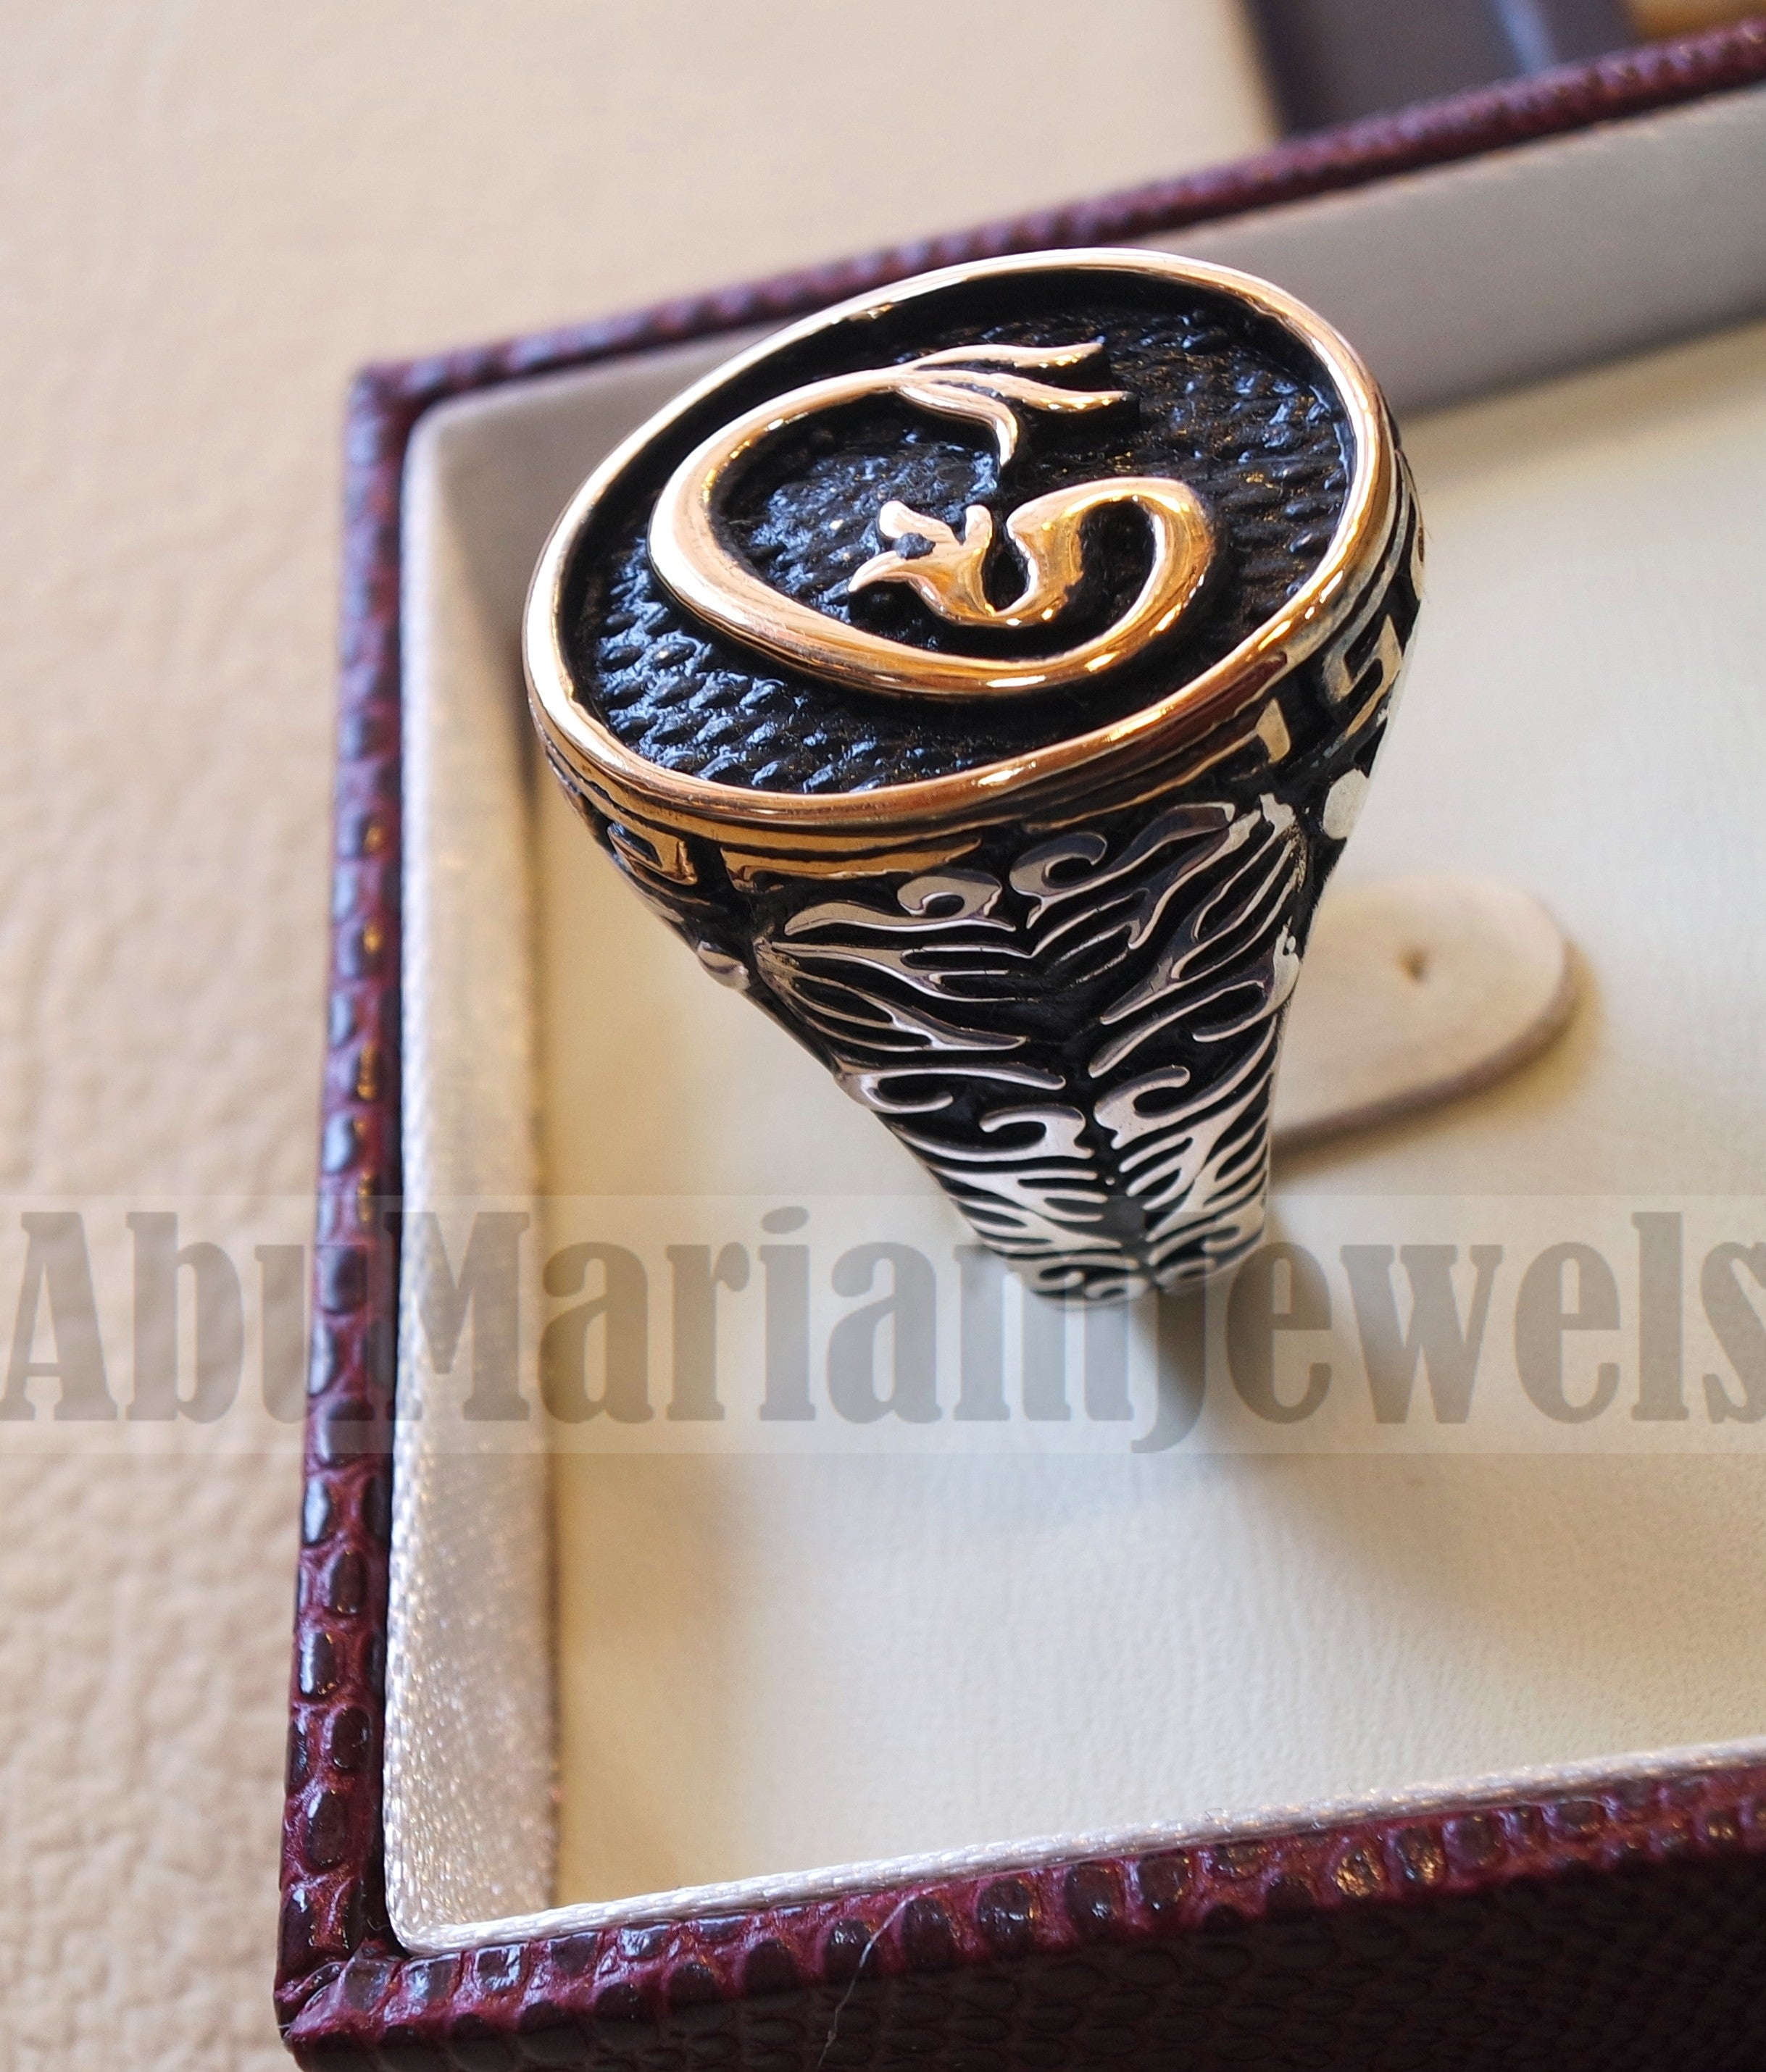 Arabic abjad waw vav heavy men ring sterling silver 925 bronze face ottoman turkish islam jewelry all sizes fast shipping